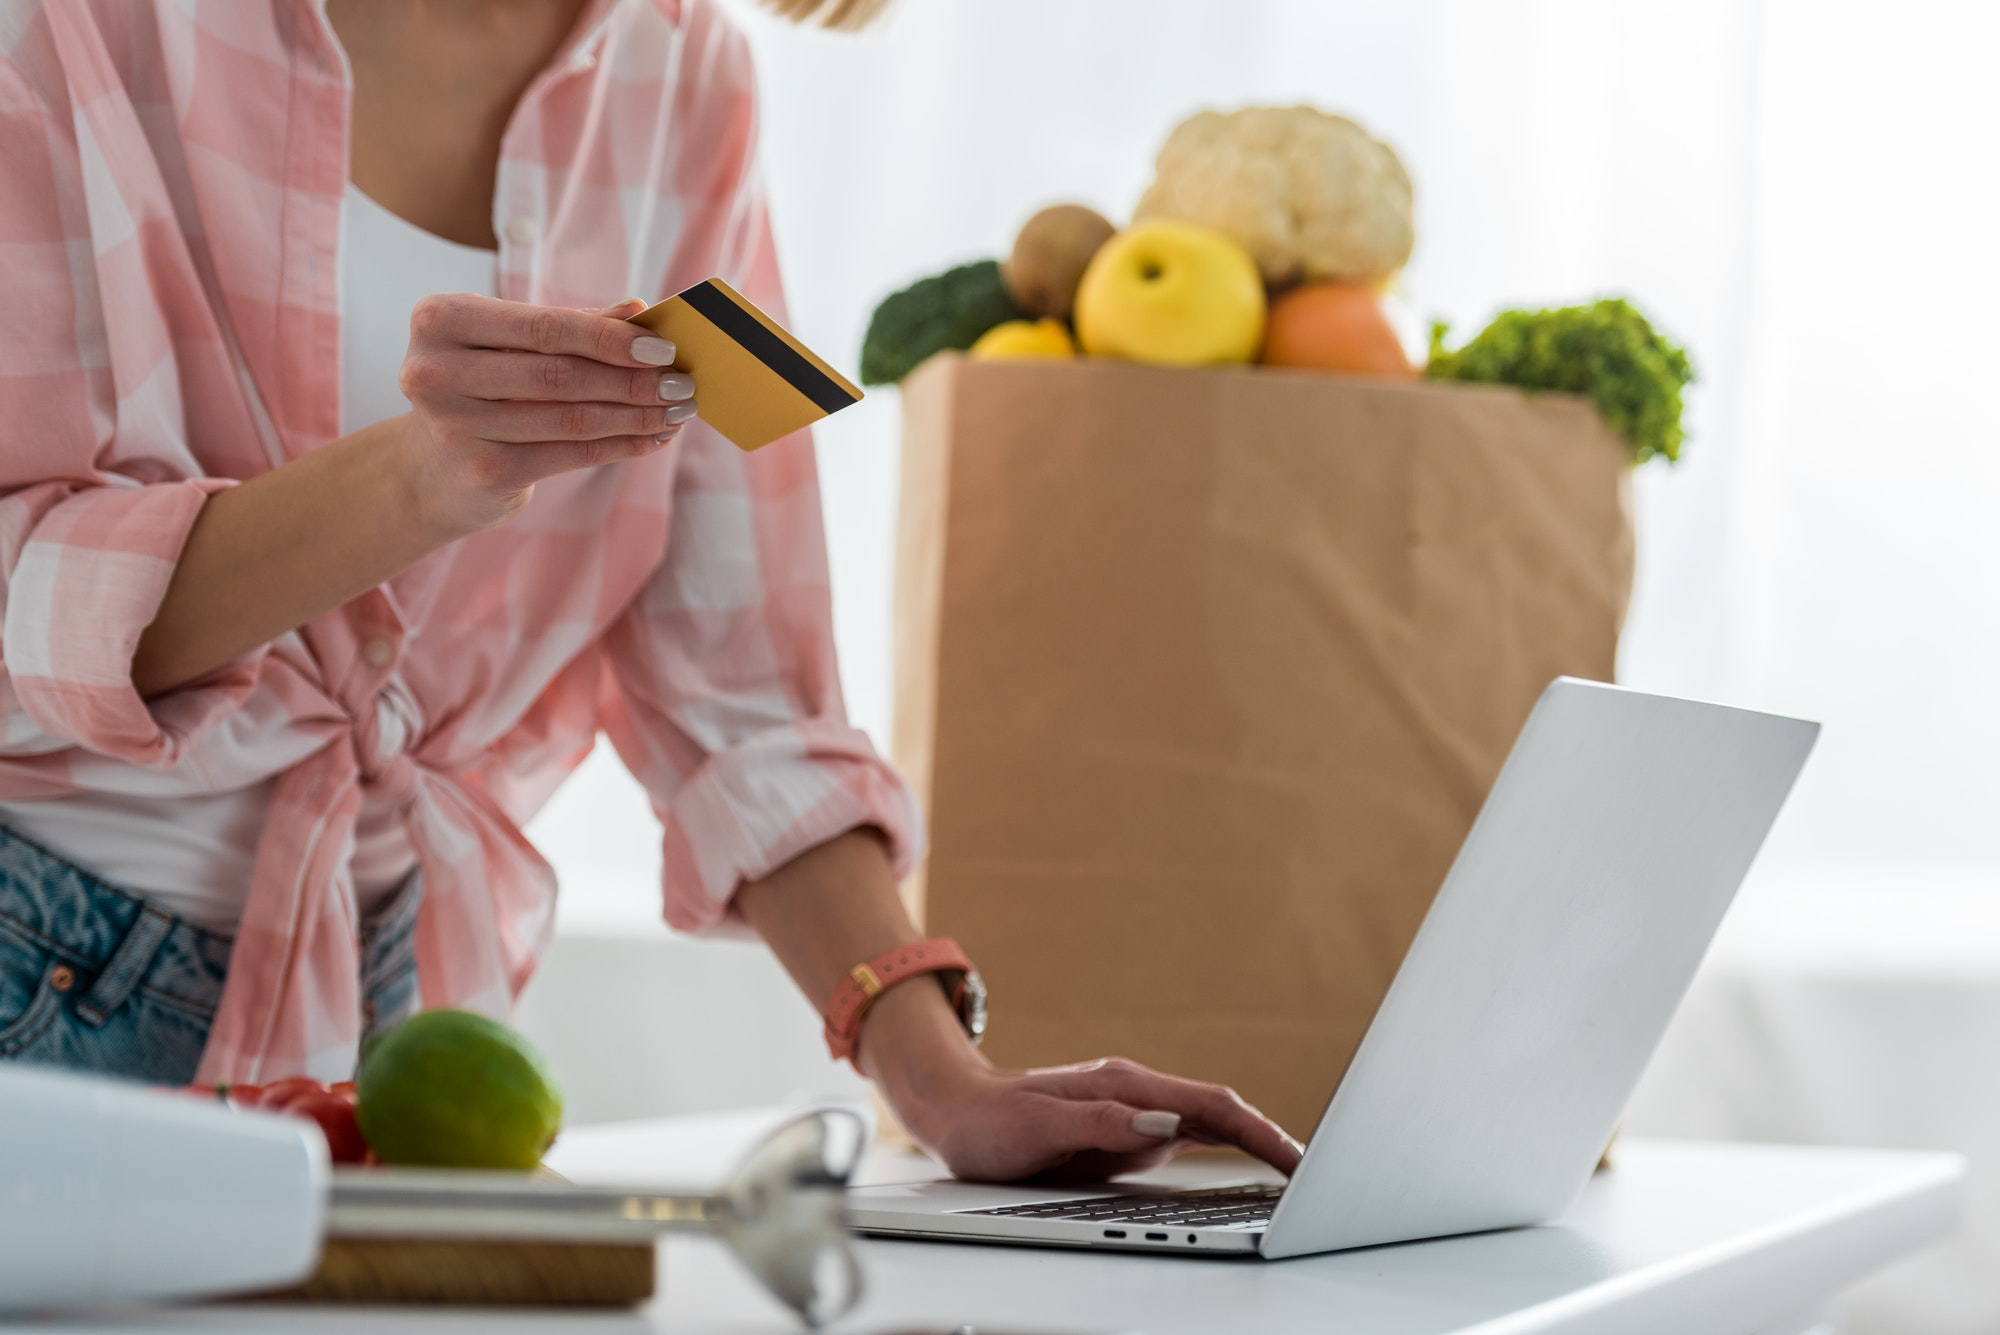 cropped view of young woman holding credit card while using laptop near paper bag with groceries